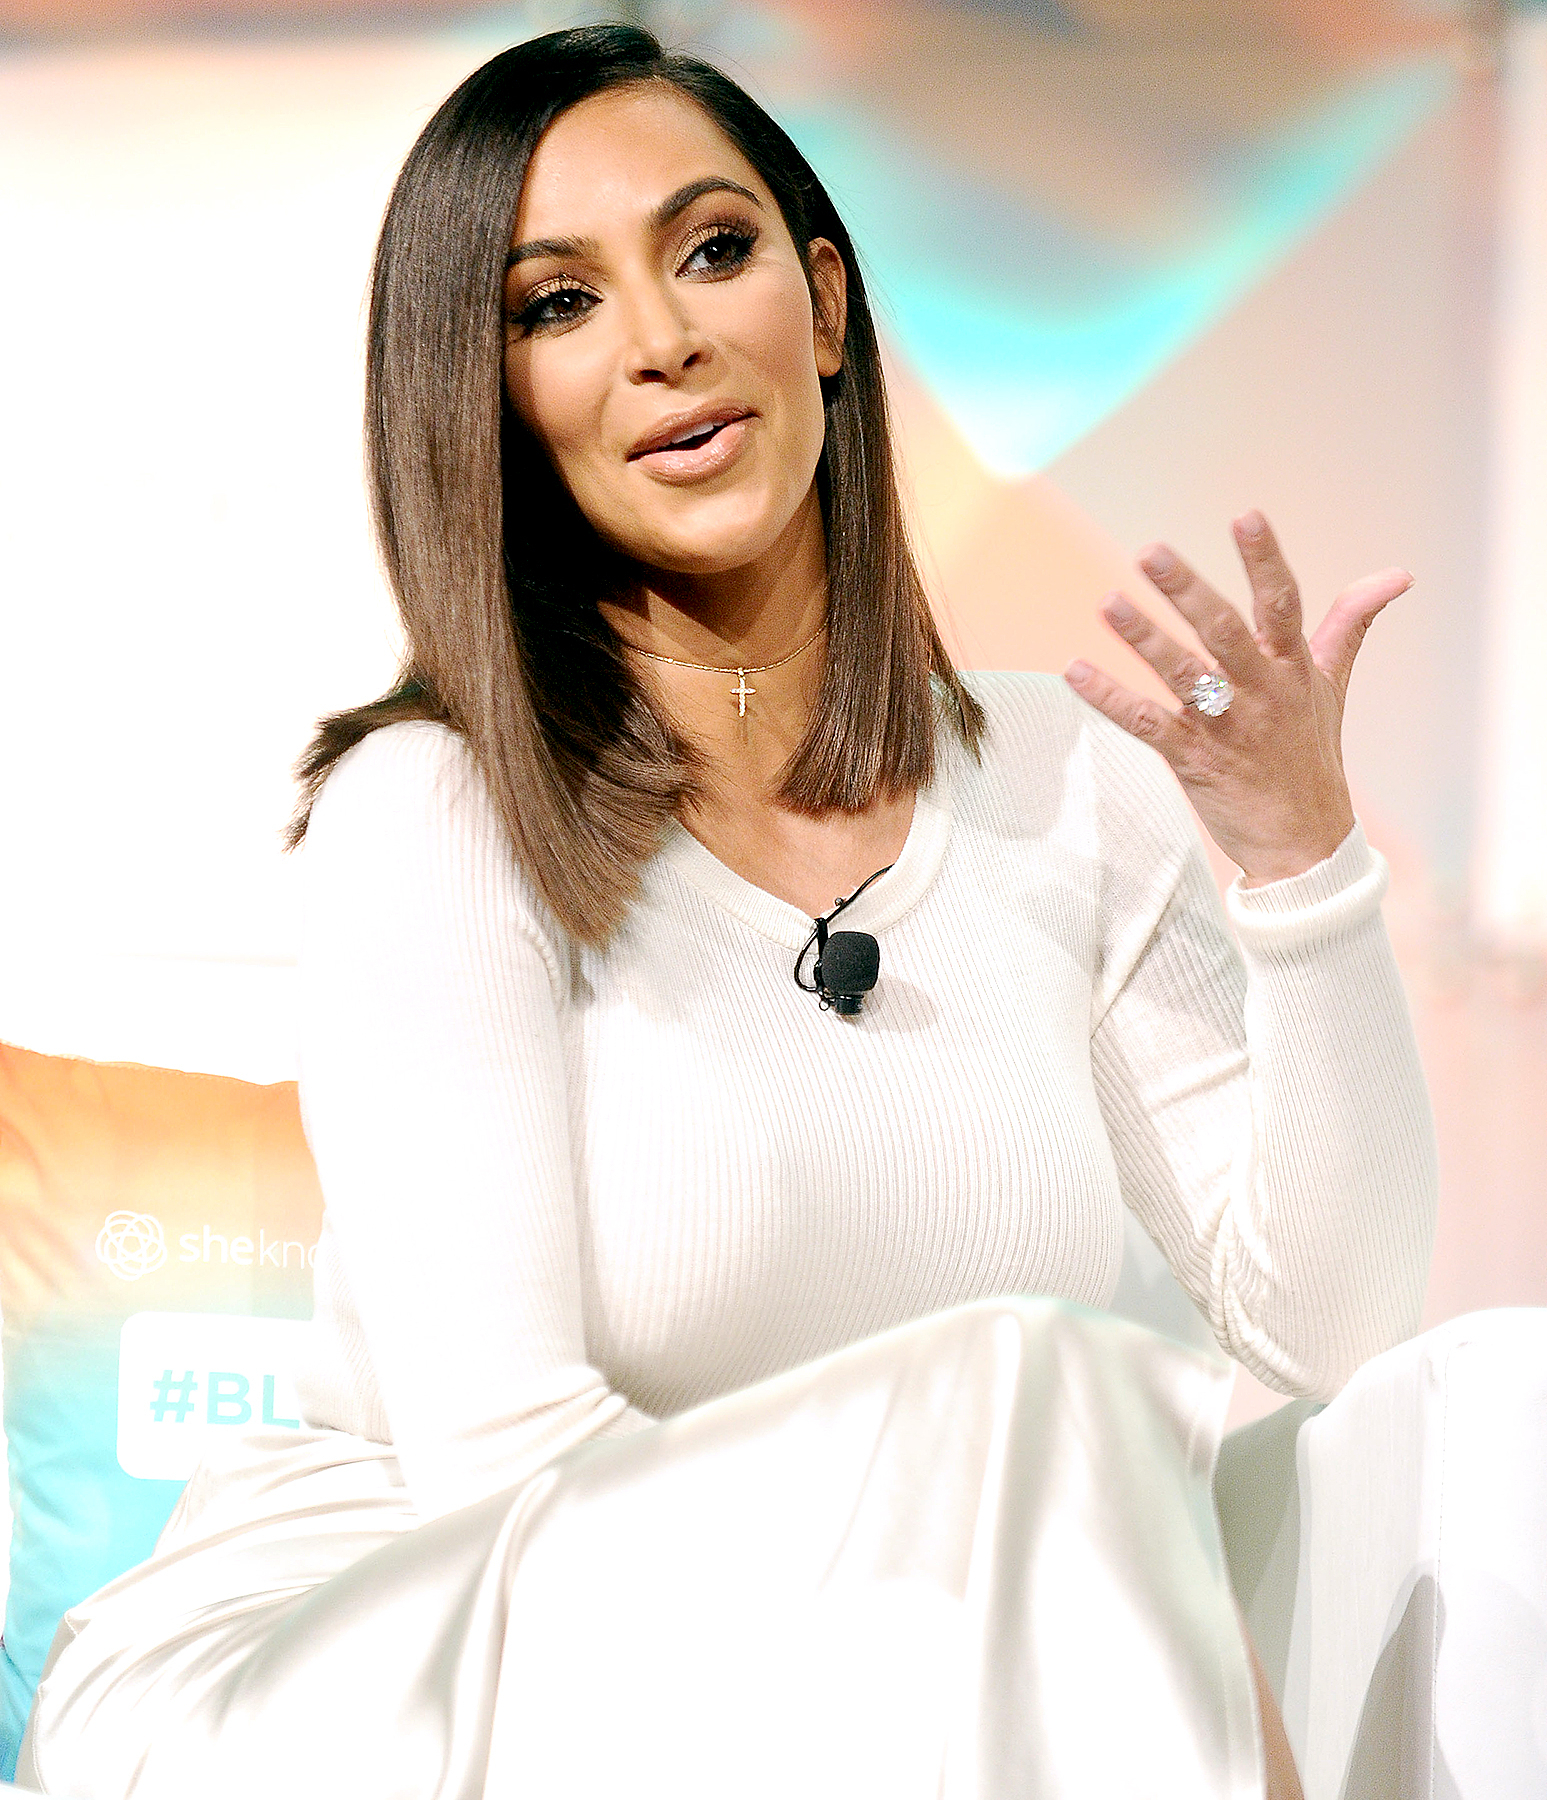 Kim Kardashian attends the #BlogHer16 Experts Among Us conference at JW Marriott Los Angeles at L.A. LIVE on August 5, 2016 in Los Angeles, California.